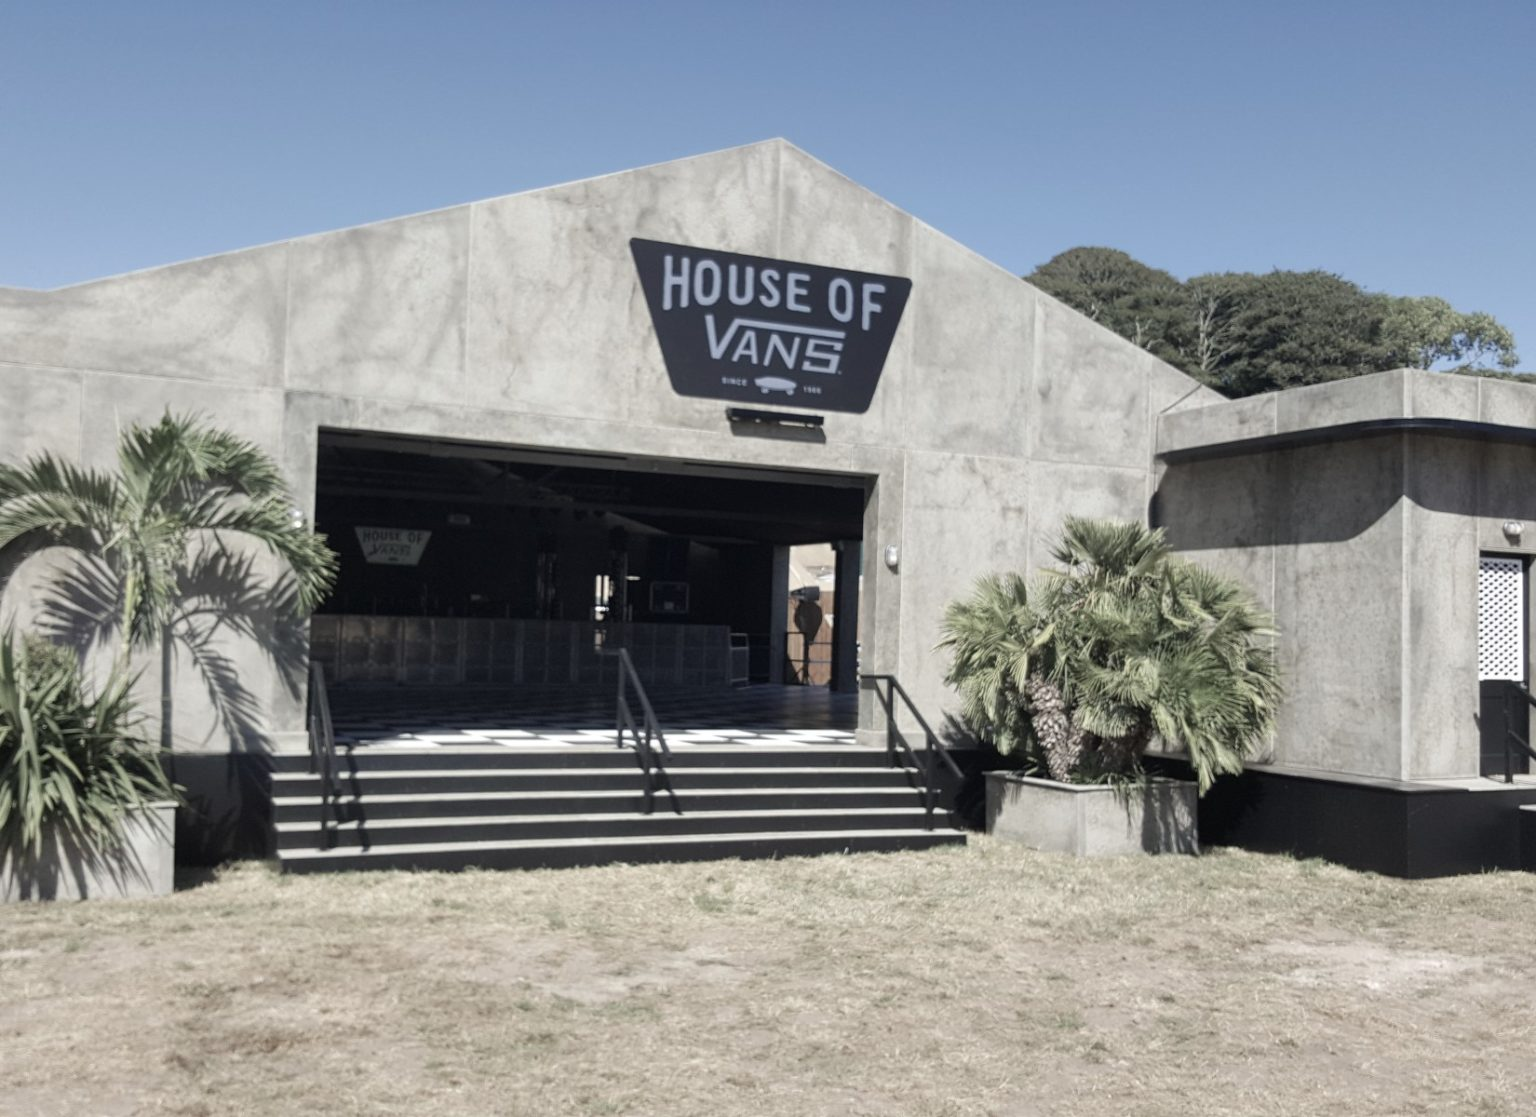 House of Vans Temporary Structure